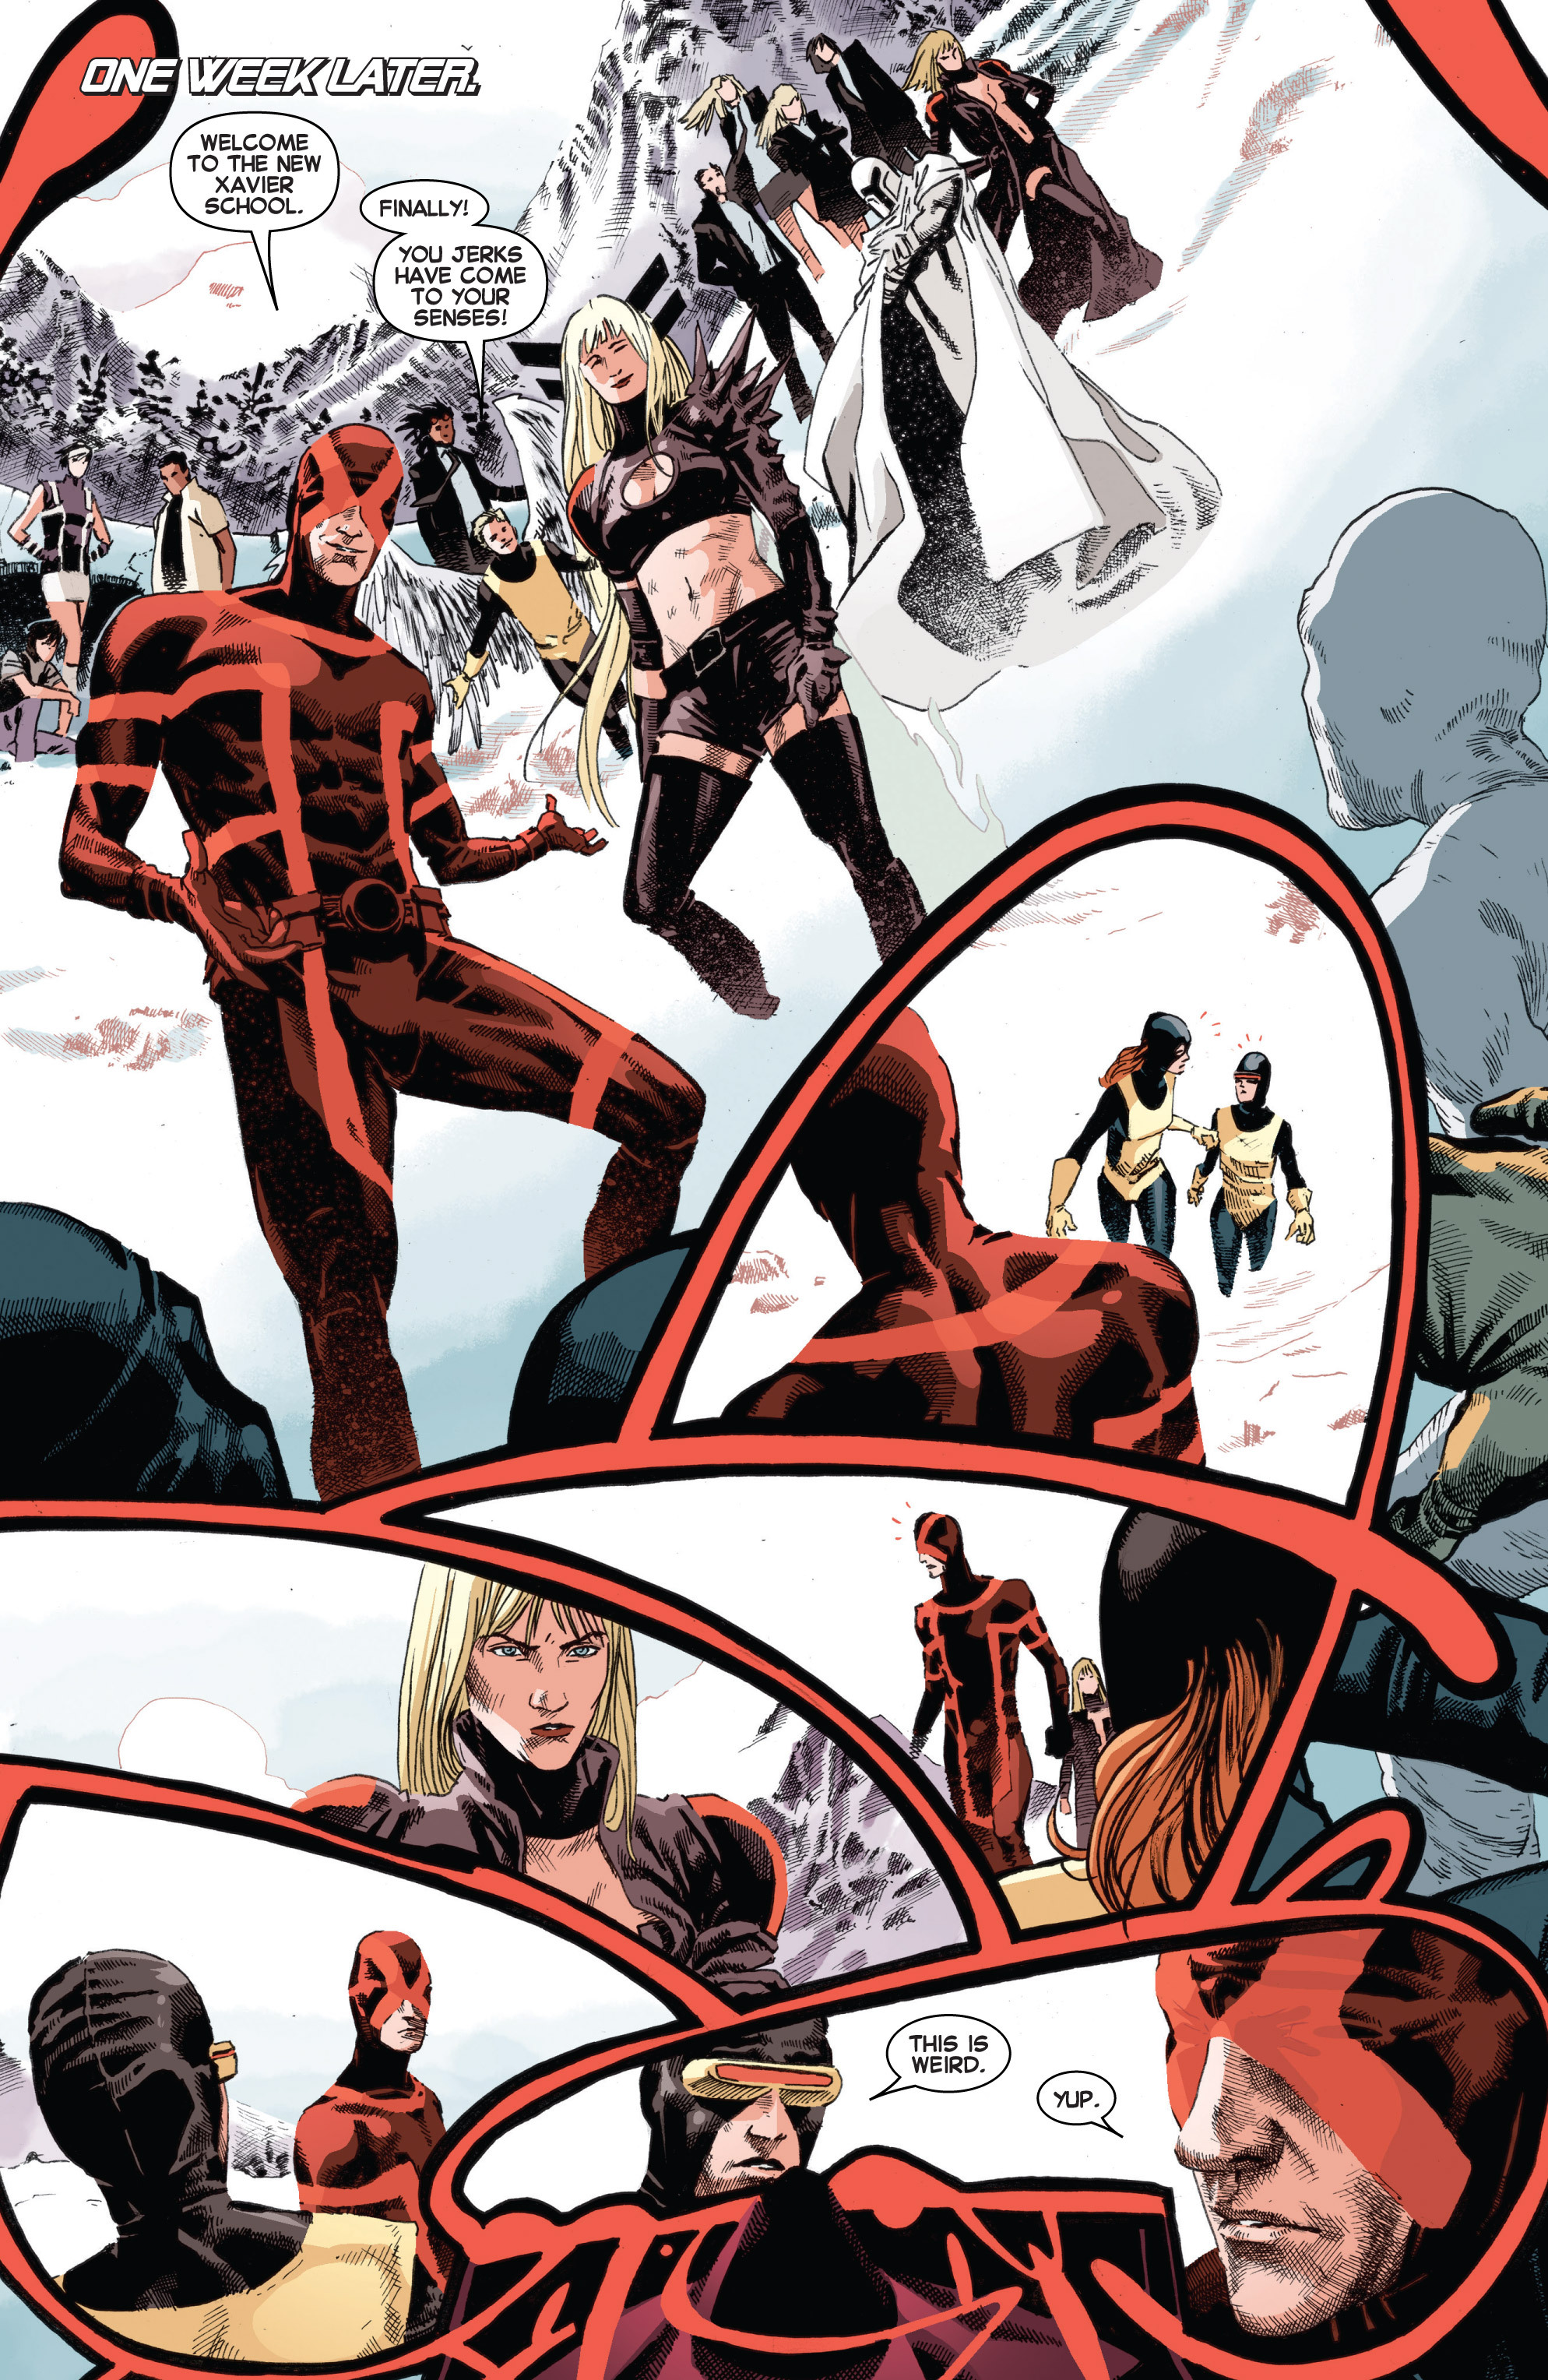 Read online Uncanny X-Men (2013) comic -  Issue # _TPB 3 - The Good, The Bad, The Inhuman - 97